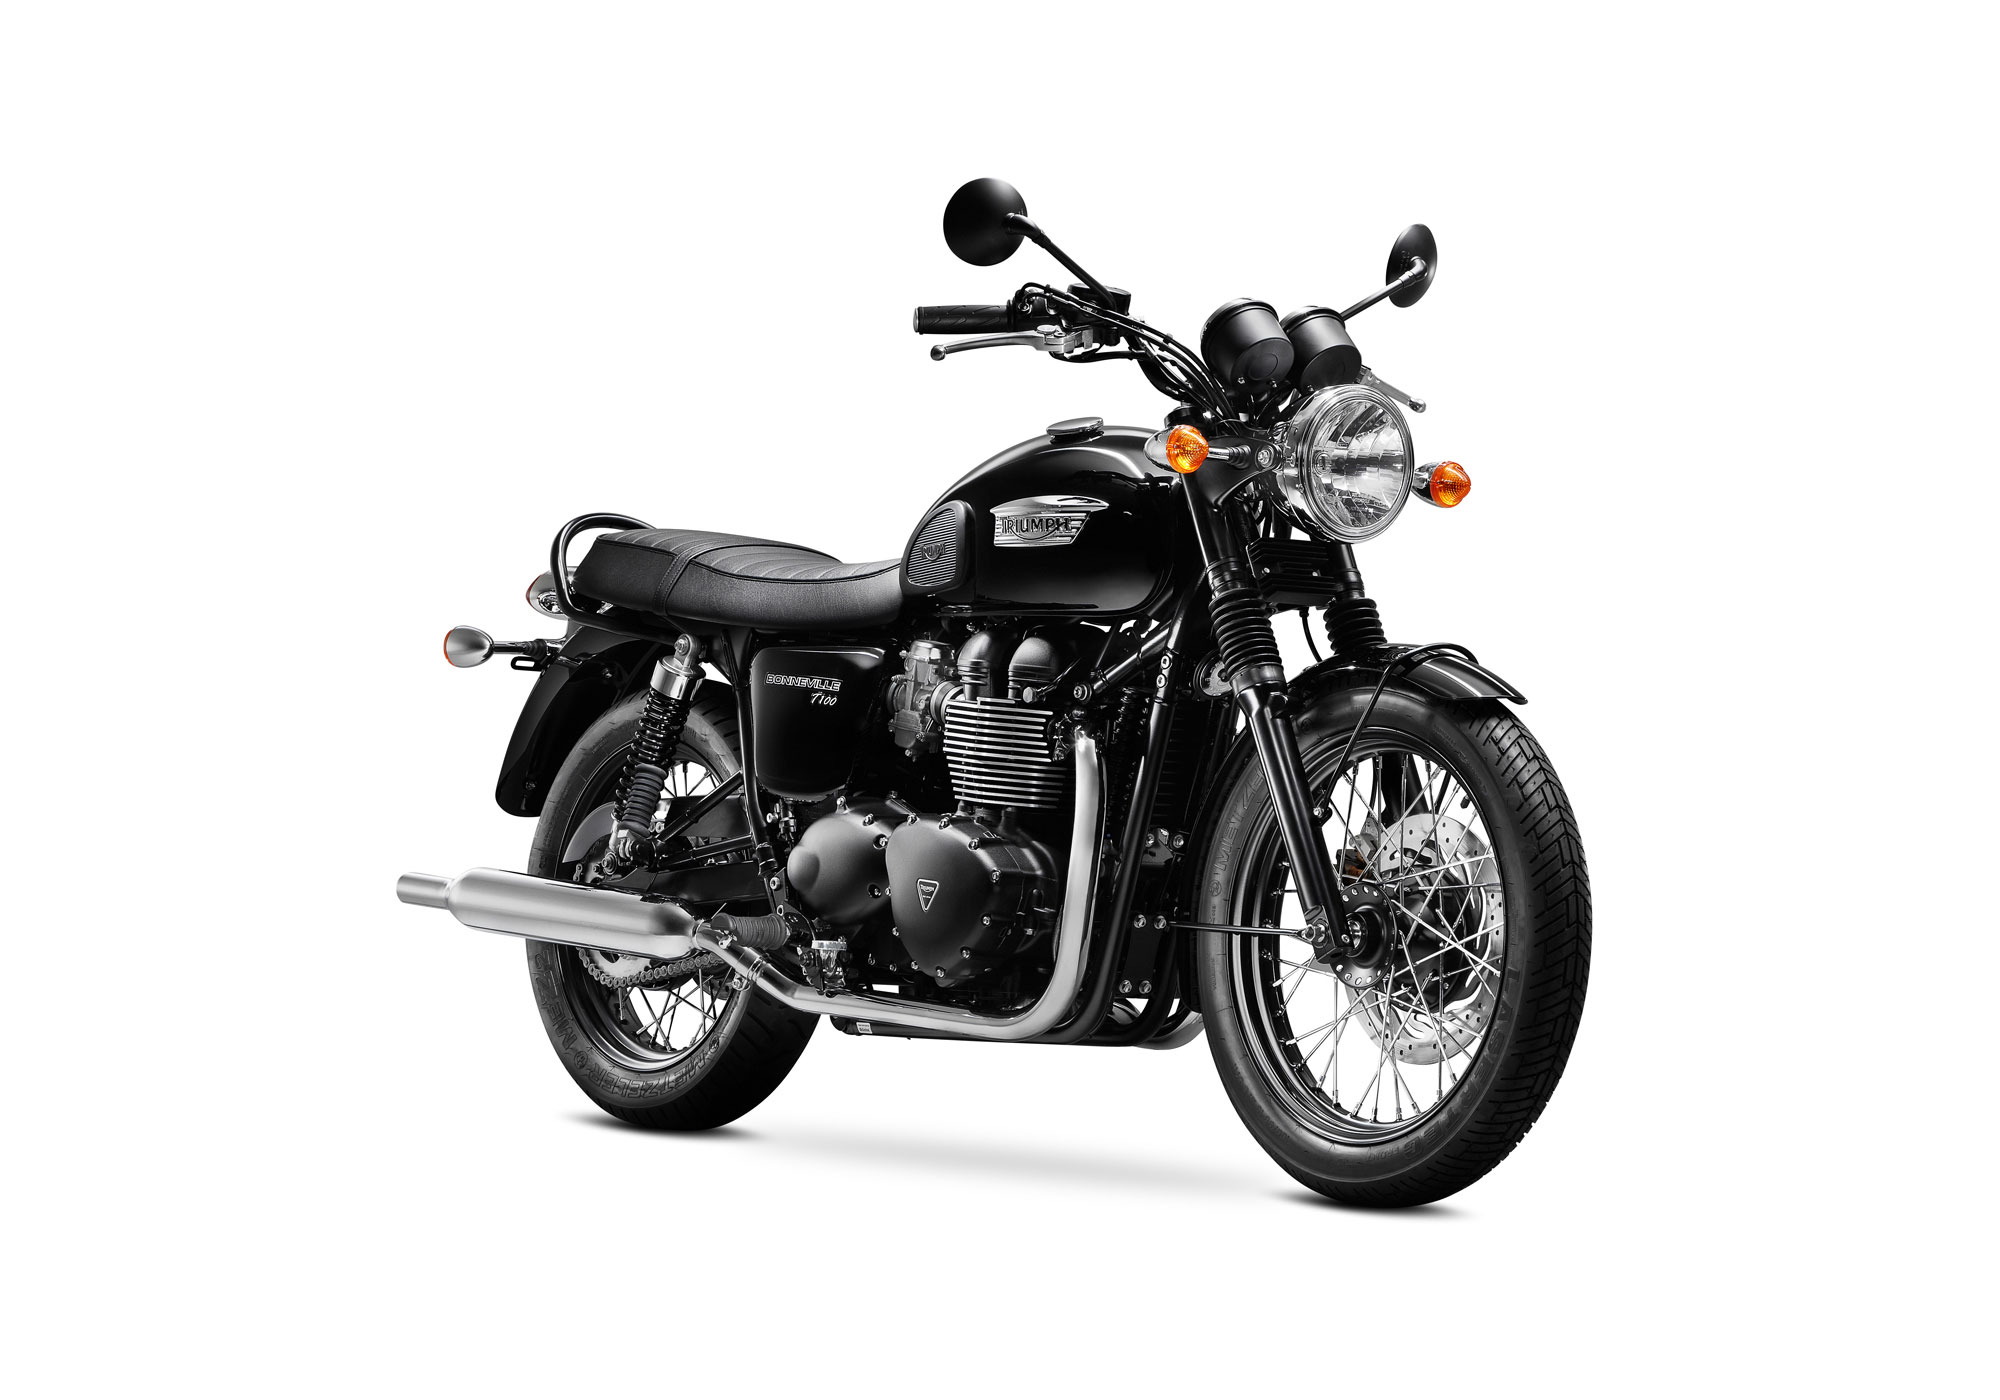 2015 triumph bonneville t100 black review. Black Bedroom Furniture Sets. Home Design Ideas